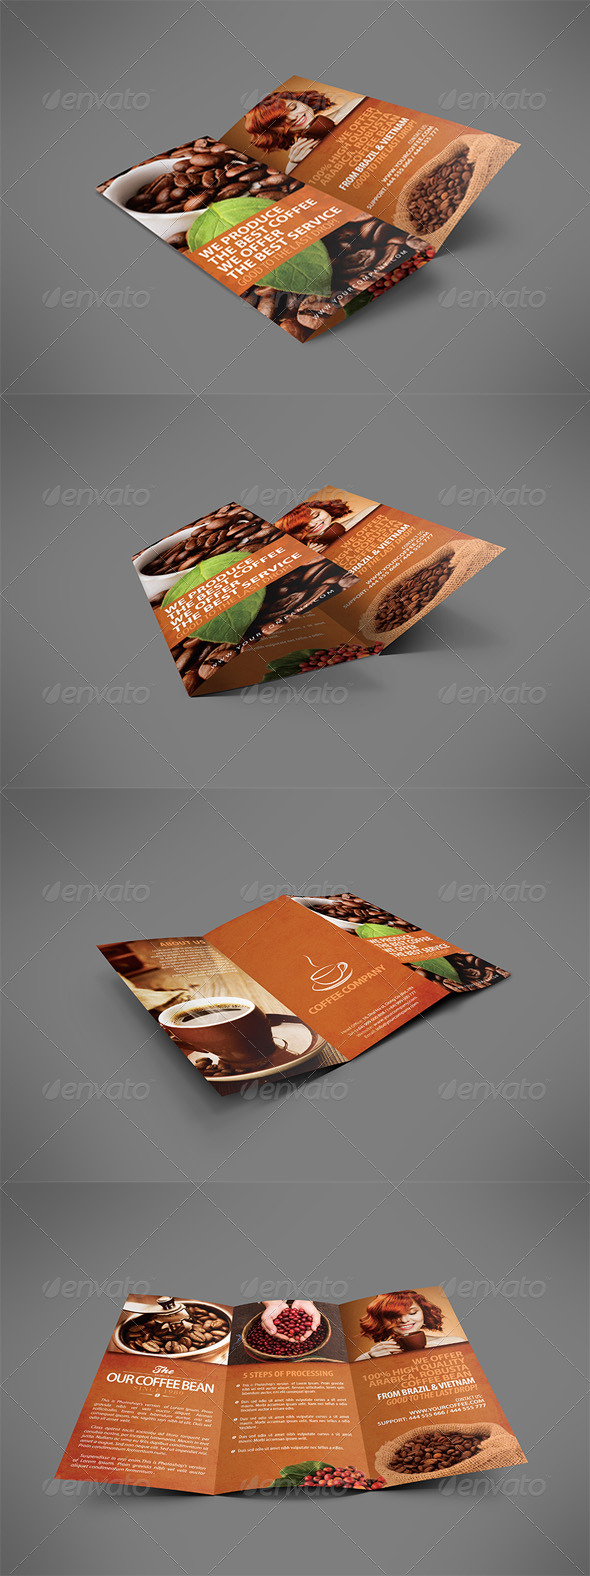 GraphicRiver Coffee Brochure Tri-fold 3947685